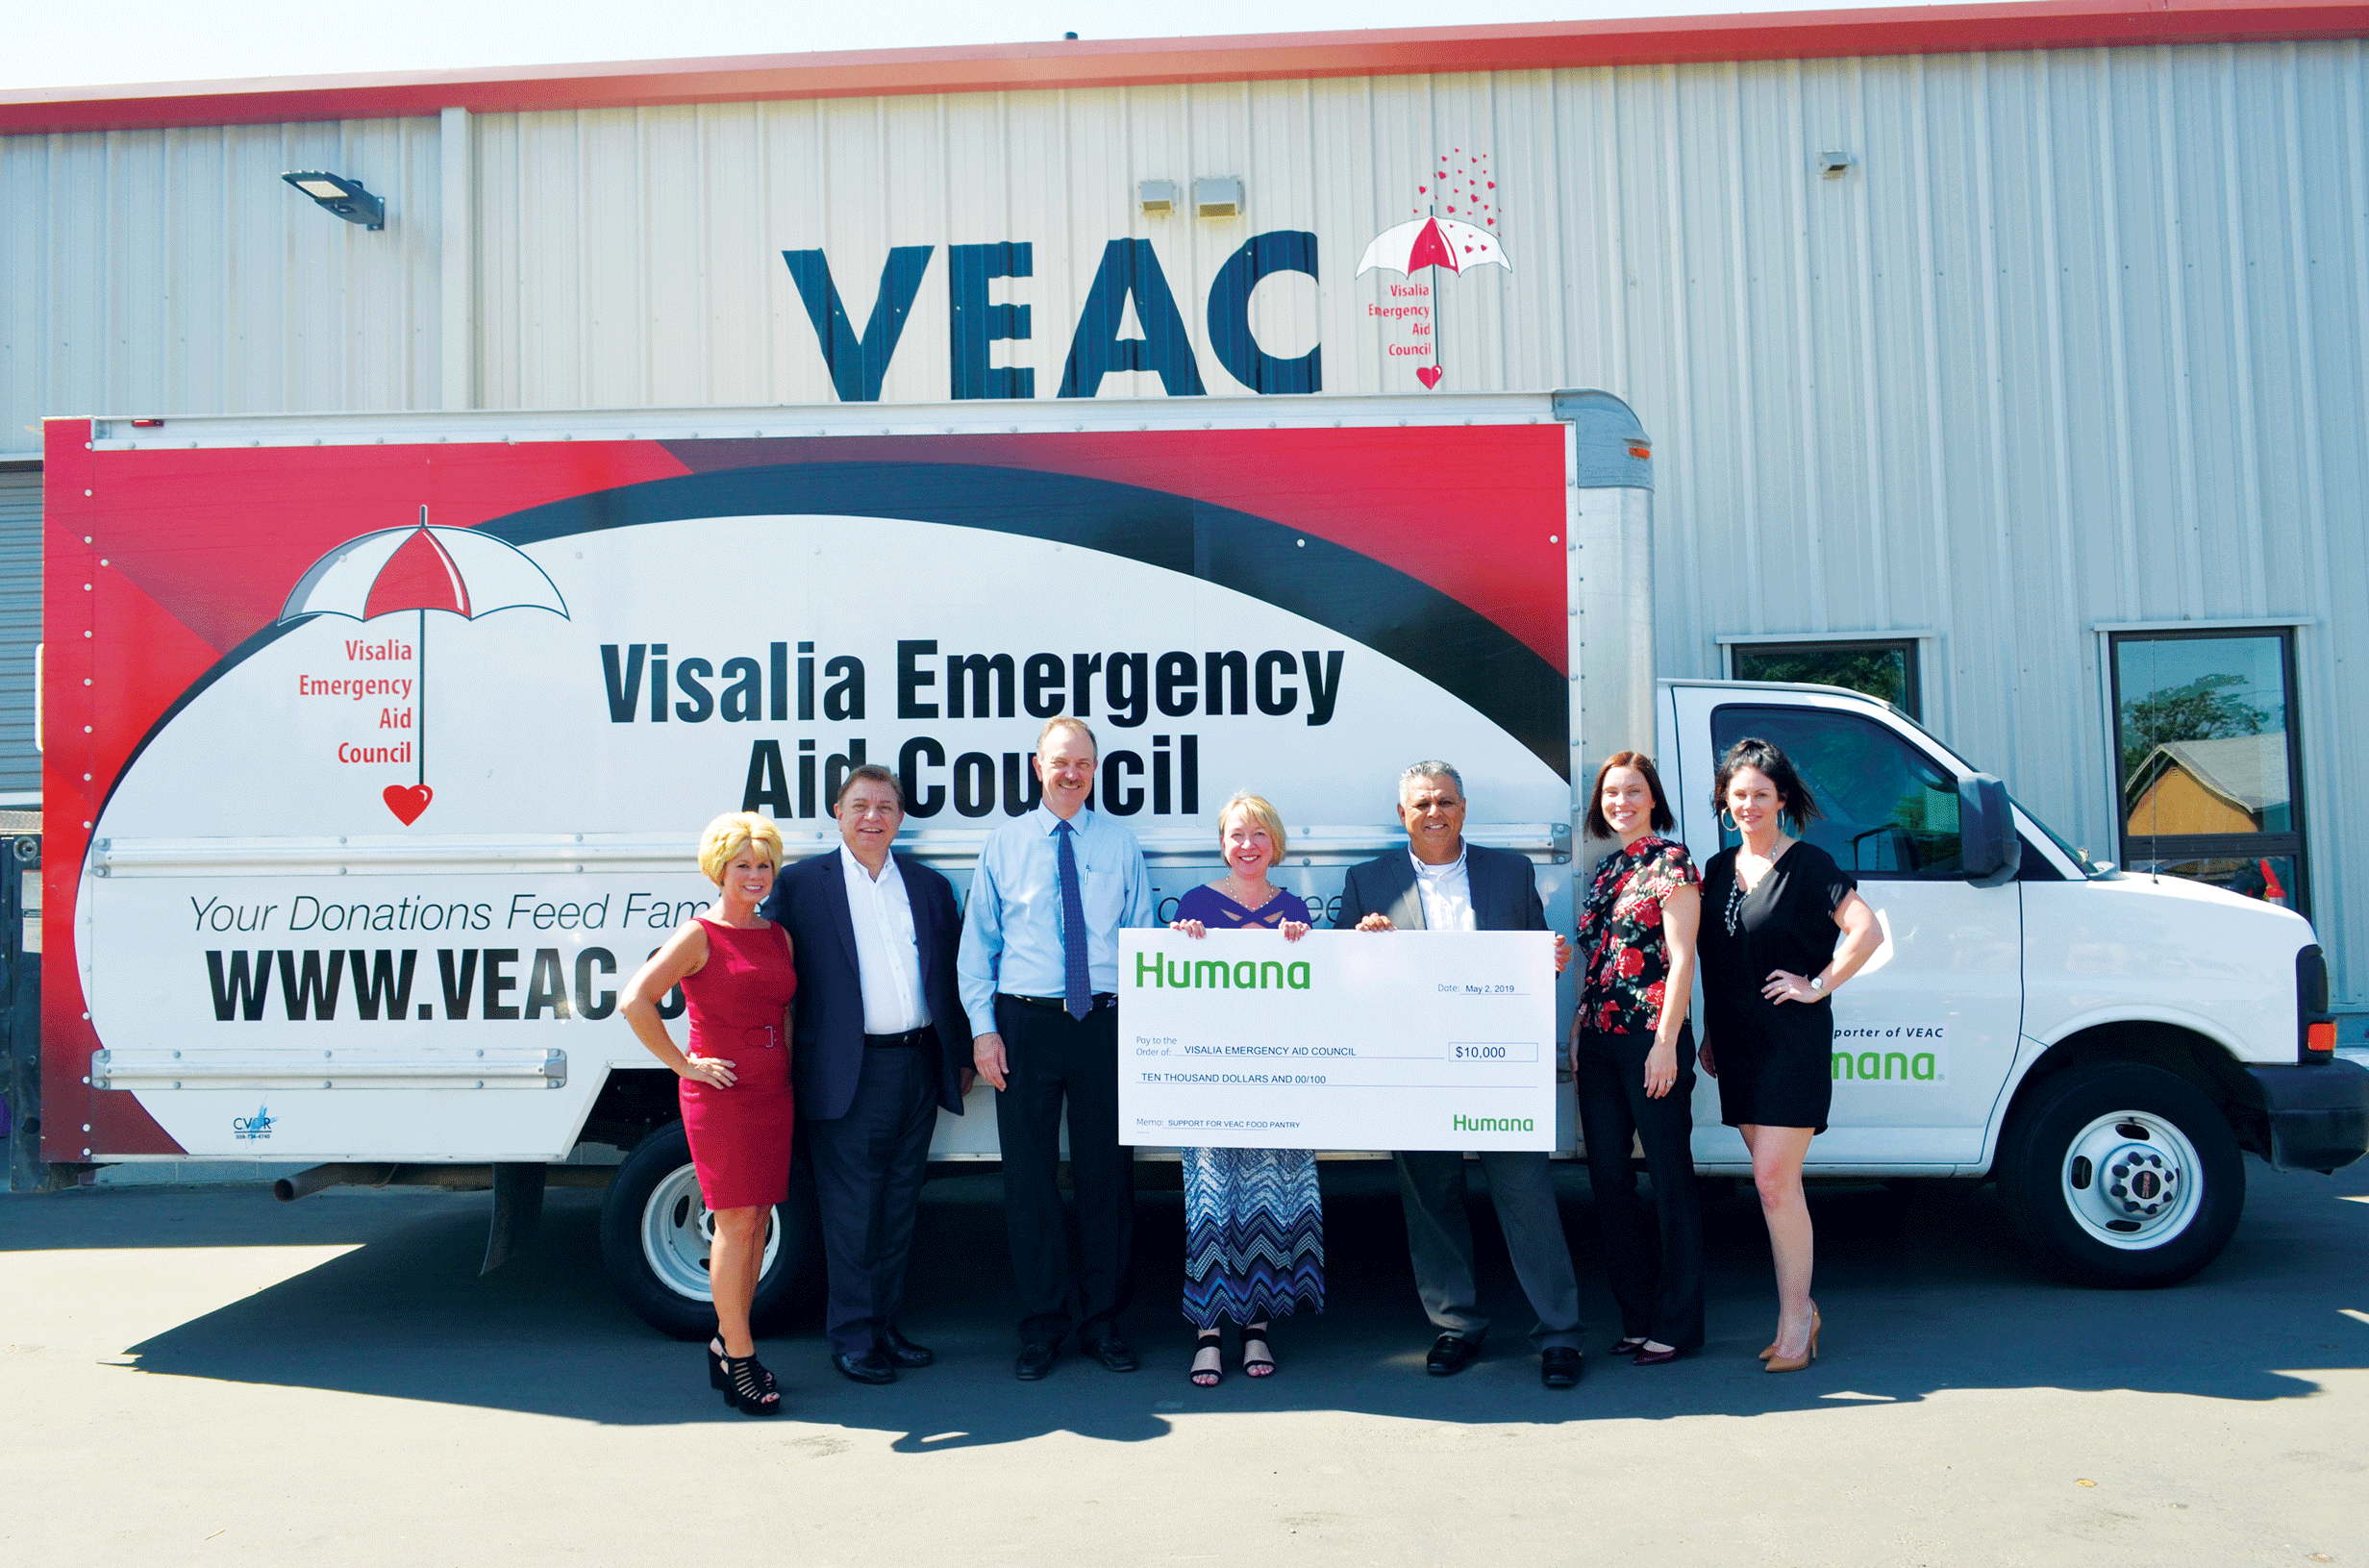 Visalia Emergency Aid Council gets $10,000 check from Humana, will provide 52,000 pounds of food